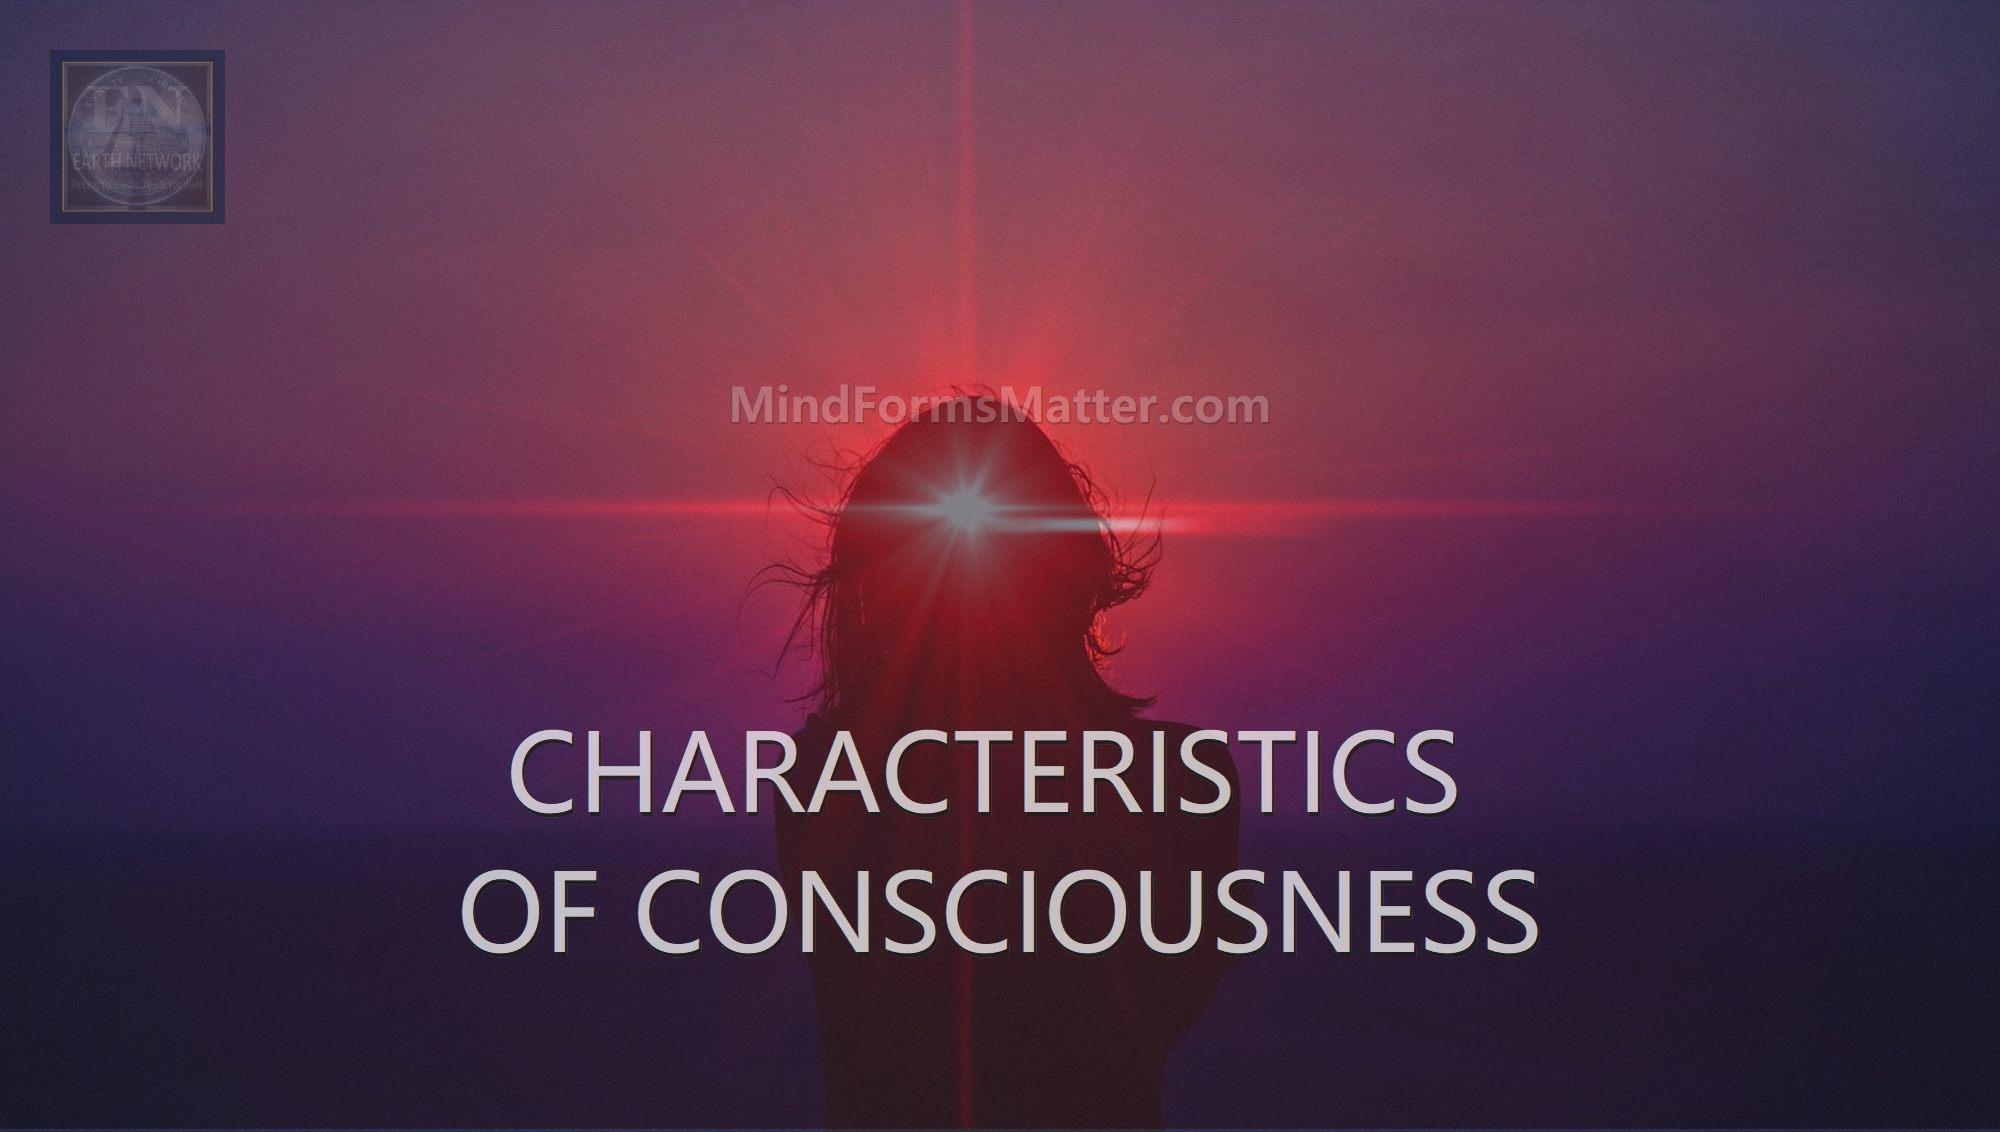 Woman-with-light-coming-from-her-mind-depicts-what-are-the-characteristics-of-consciousness-human-nature-the-beauty-goodness-within-you-is-unlimited